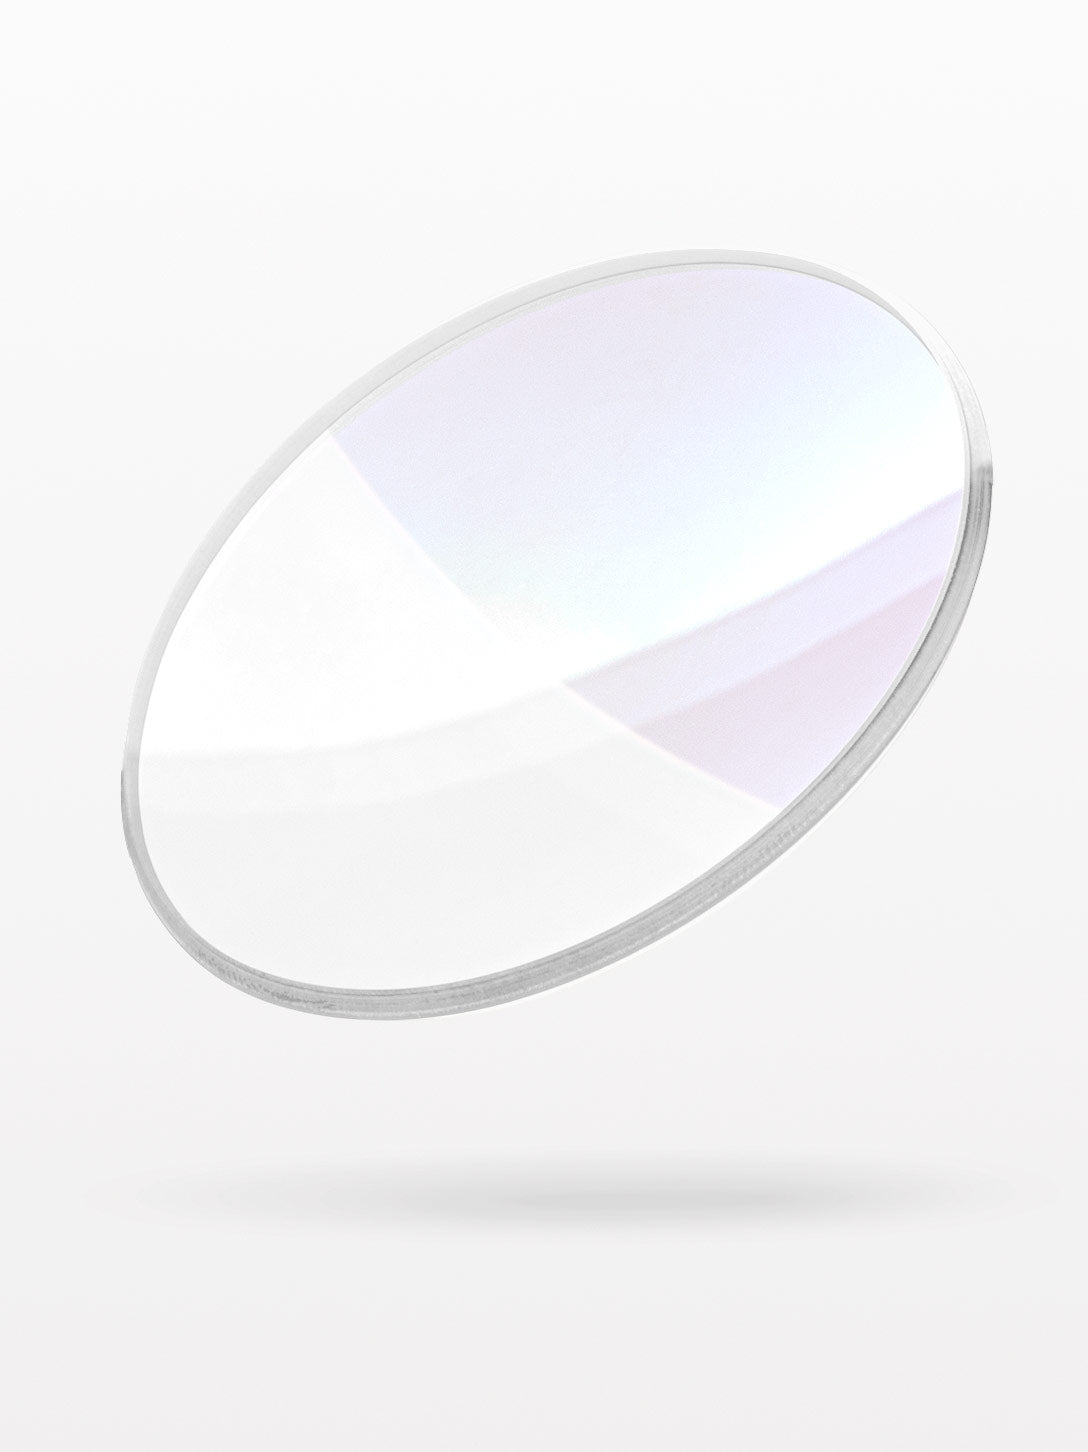 Clear lens with premium coatings applied